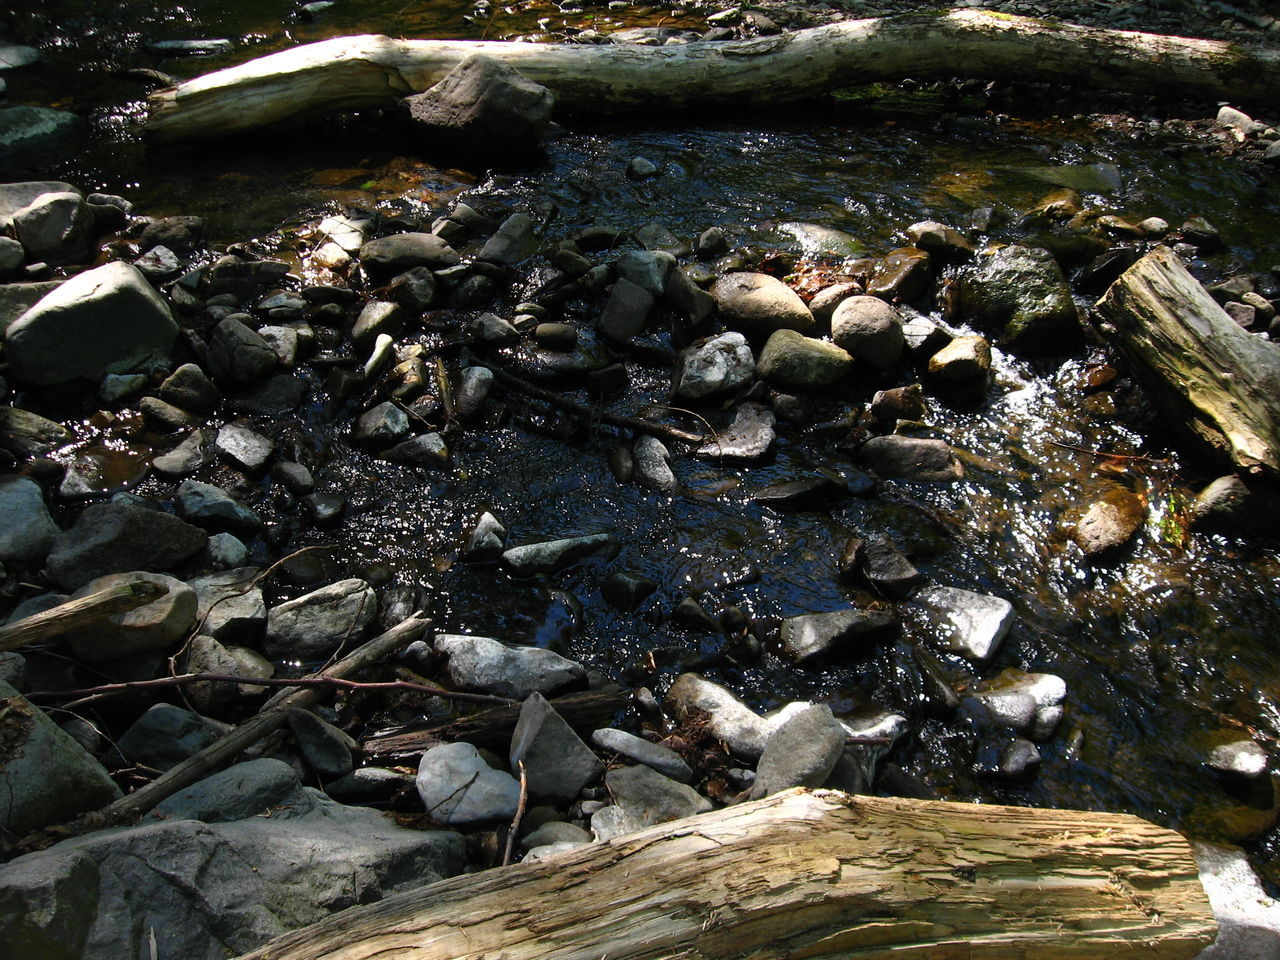 High Angle View Of Stones And Driftwood In Stream